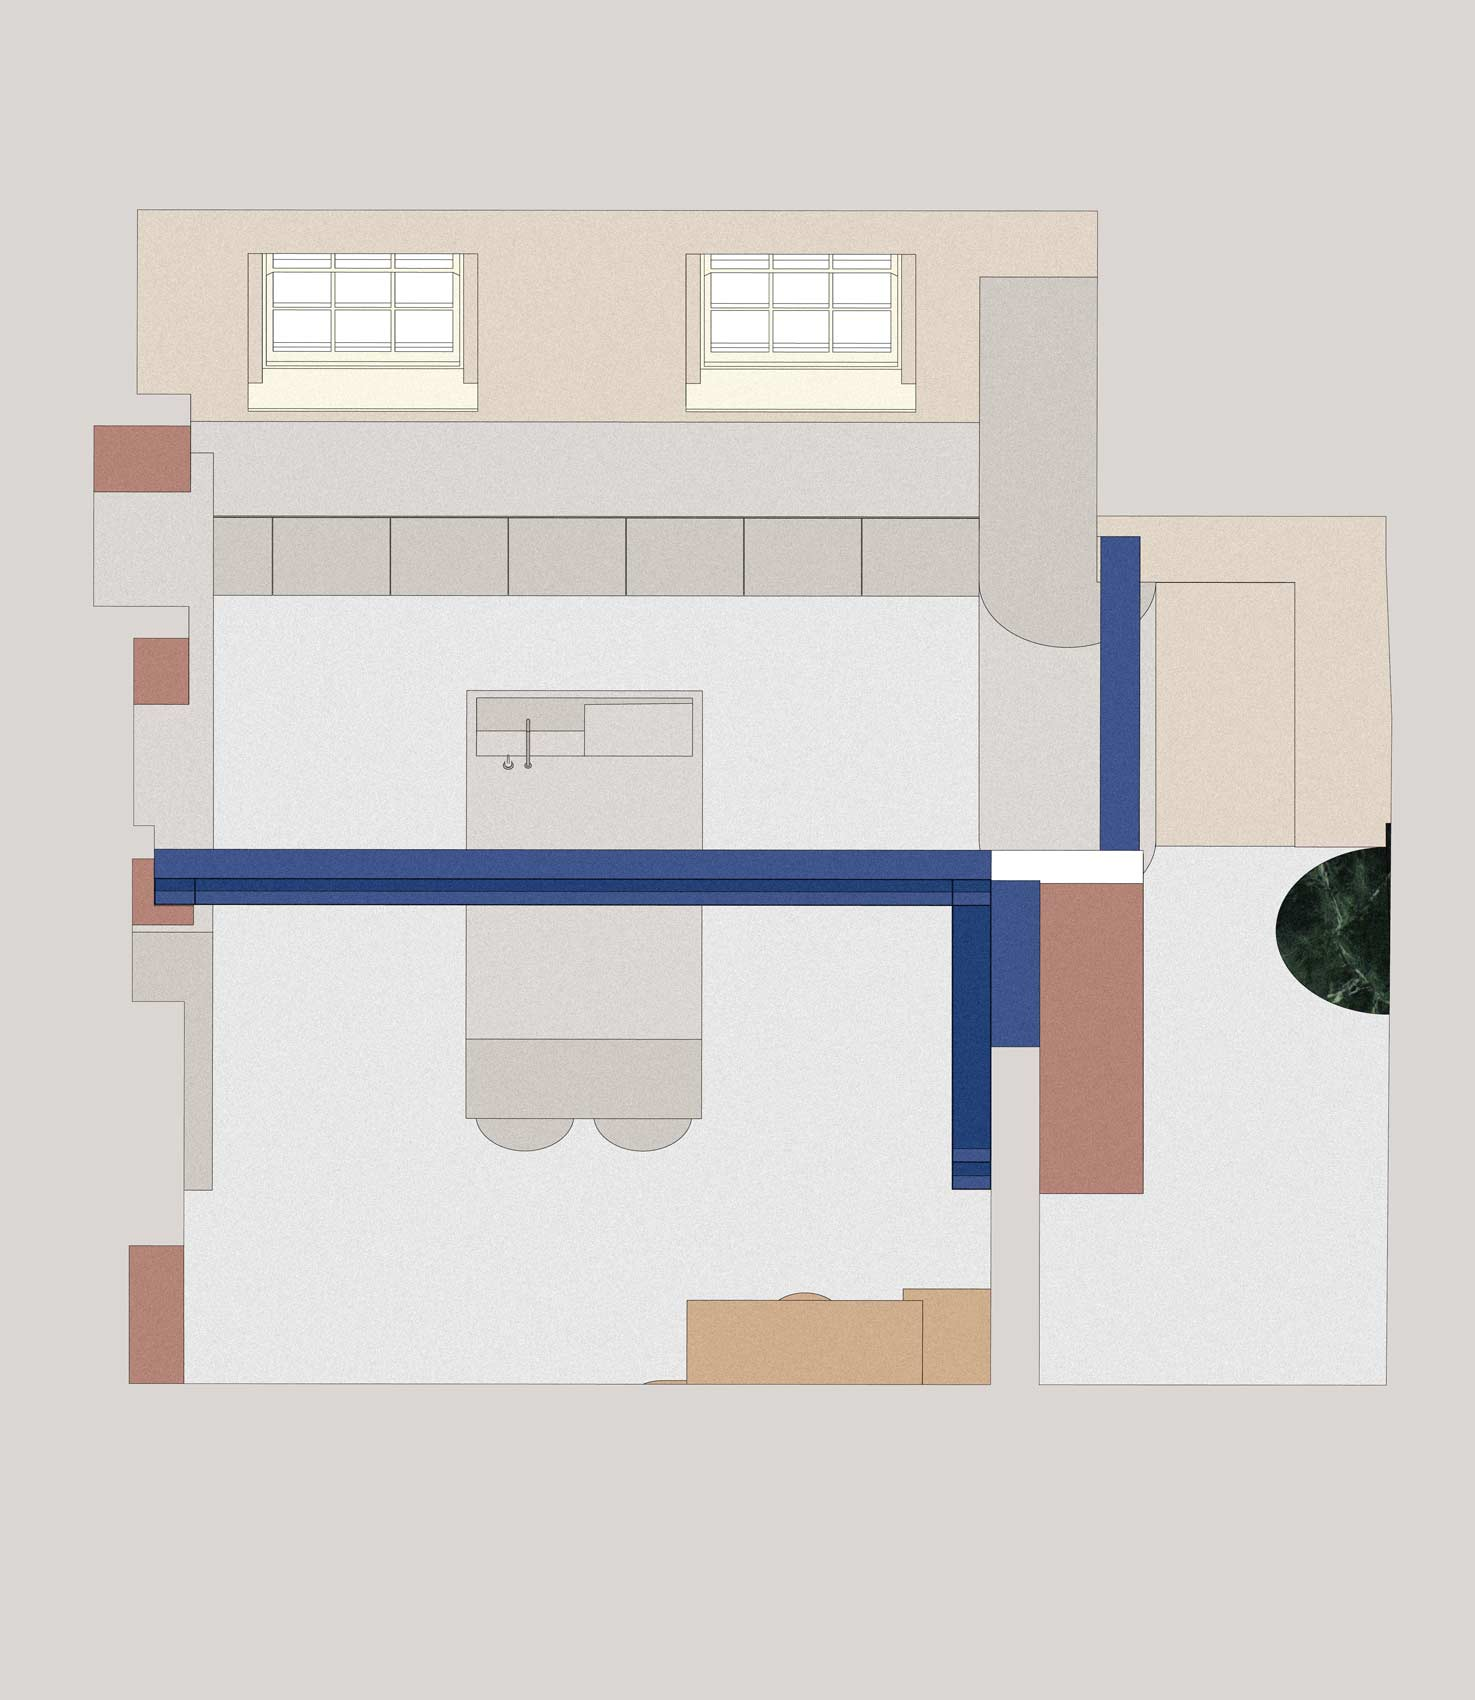 architect designed house drawing in plan